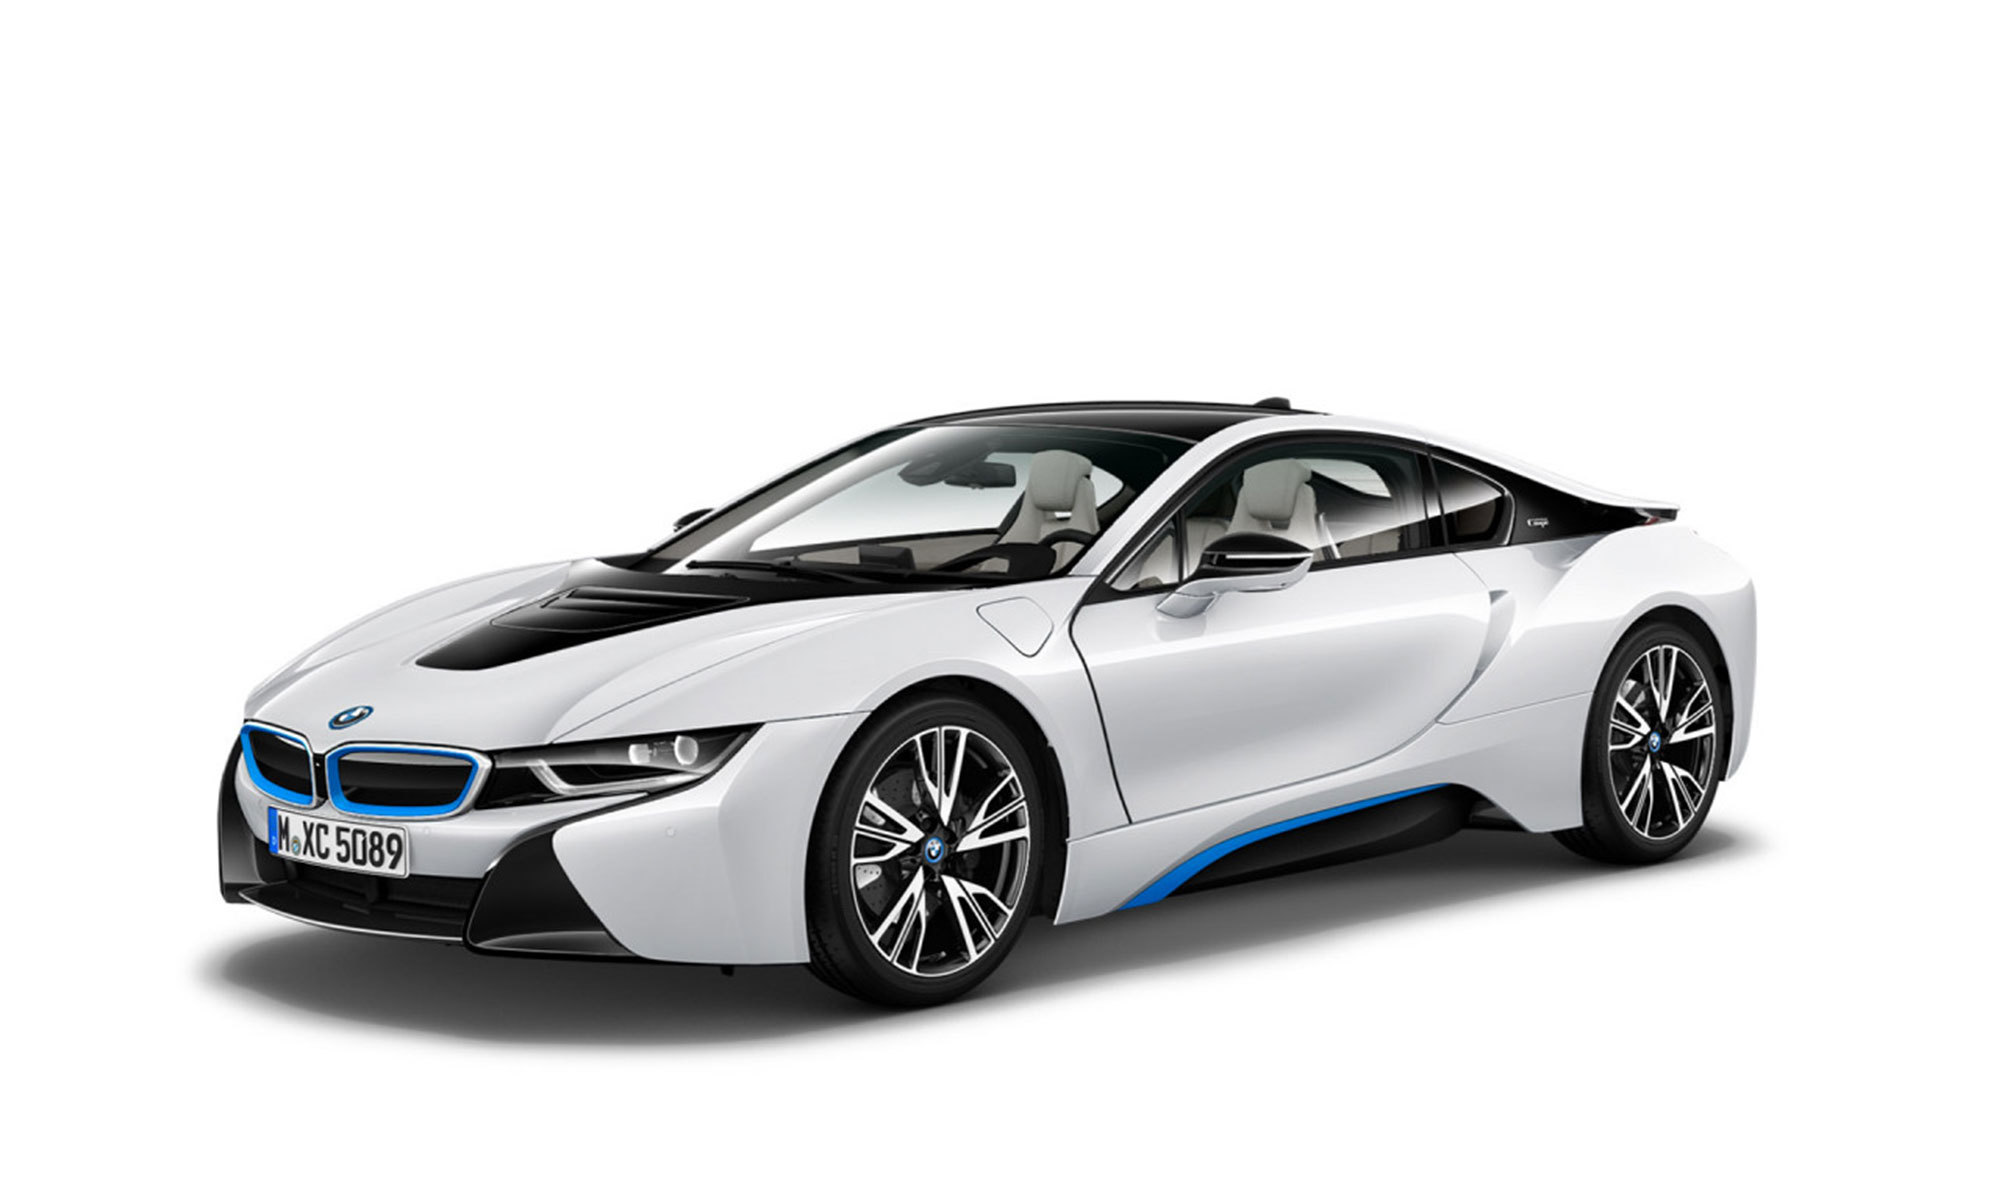 98 A 2020 BMW I8 Coupe Exterior and Interior